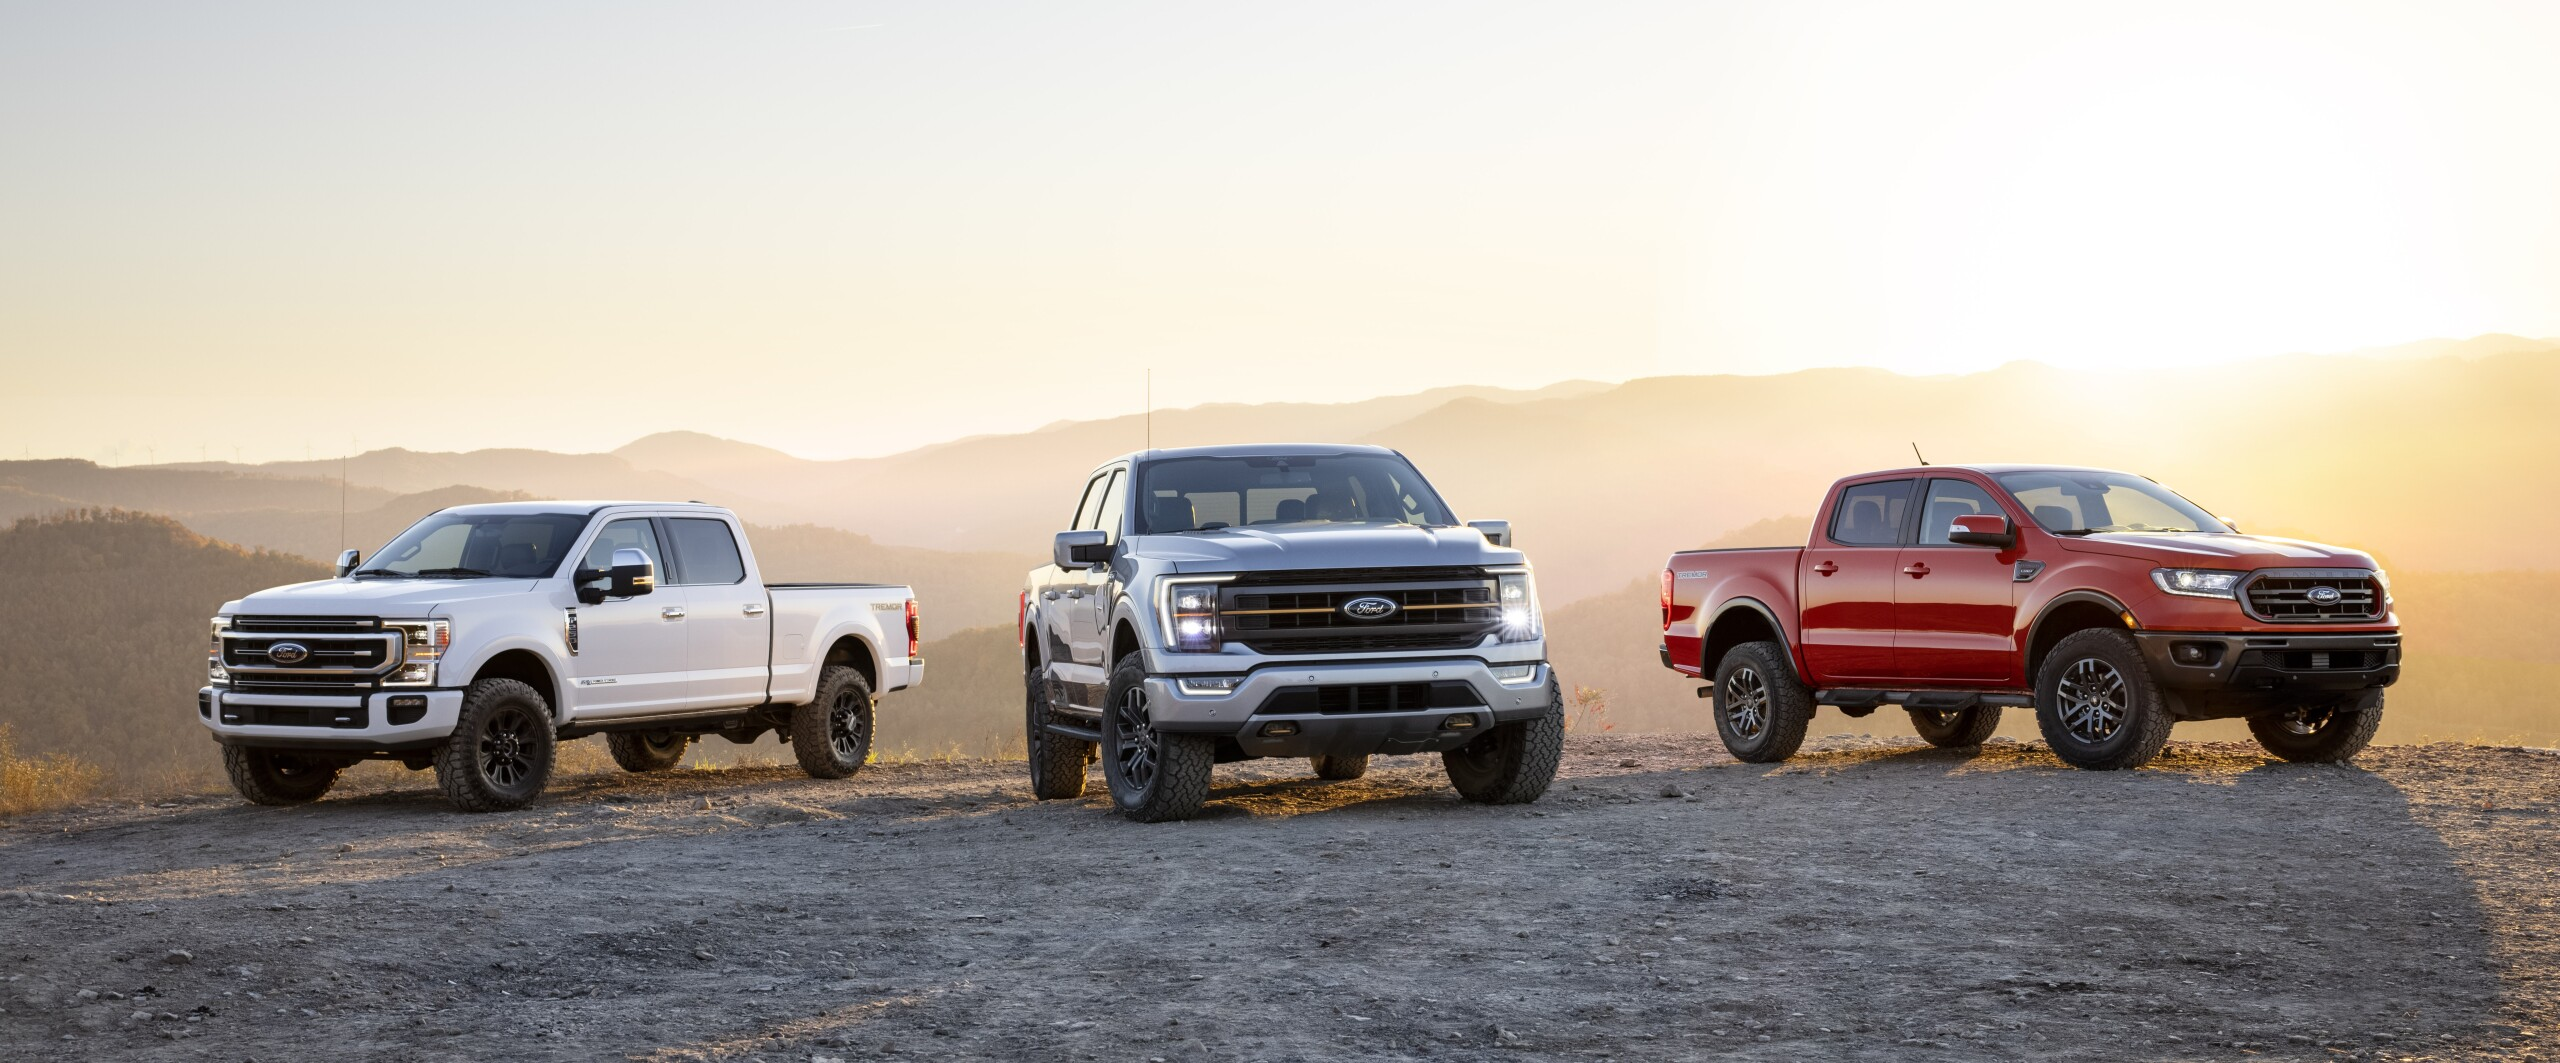 Super Duty Tremor Off-Road Package_2021 Ford F-150 Tremor_Ranger Tremor Off-Road Package.jpg